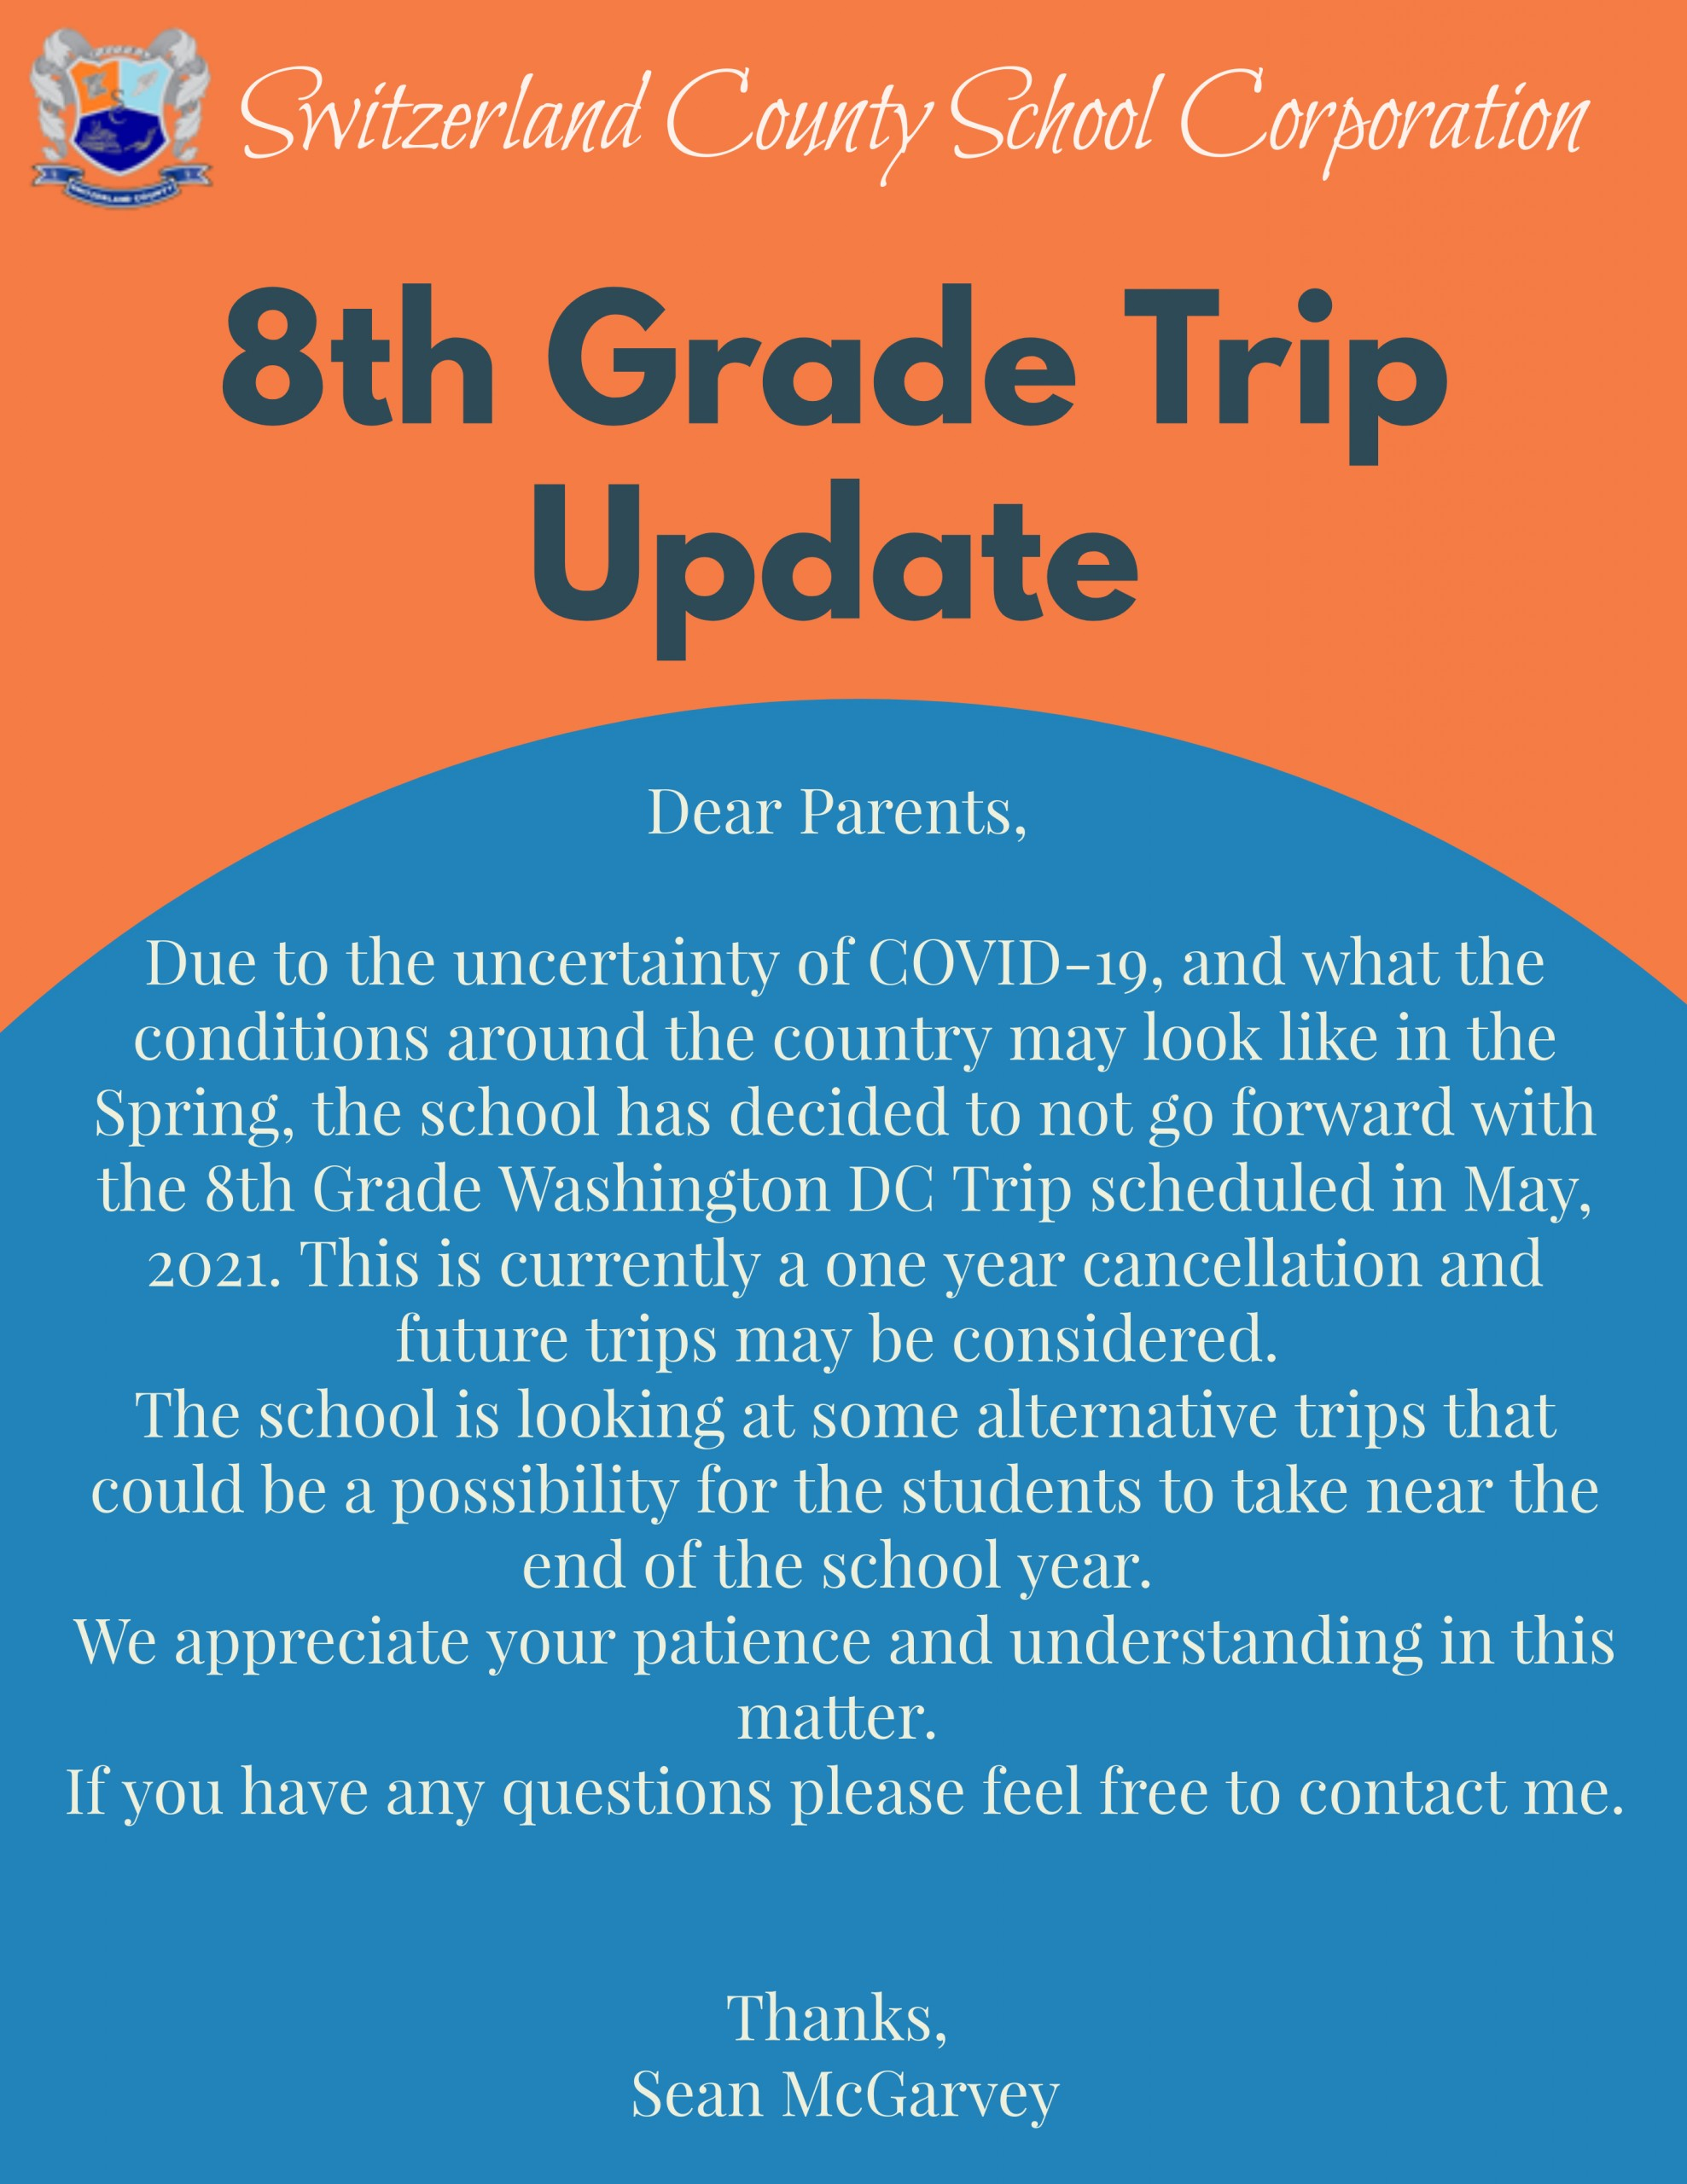 8th grade trip Announcement